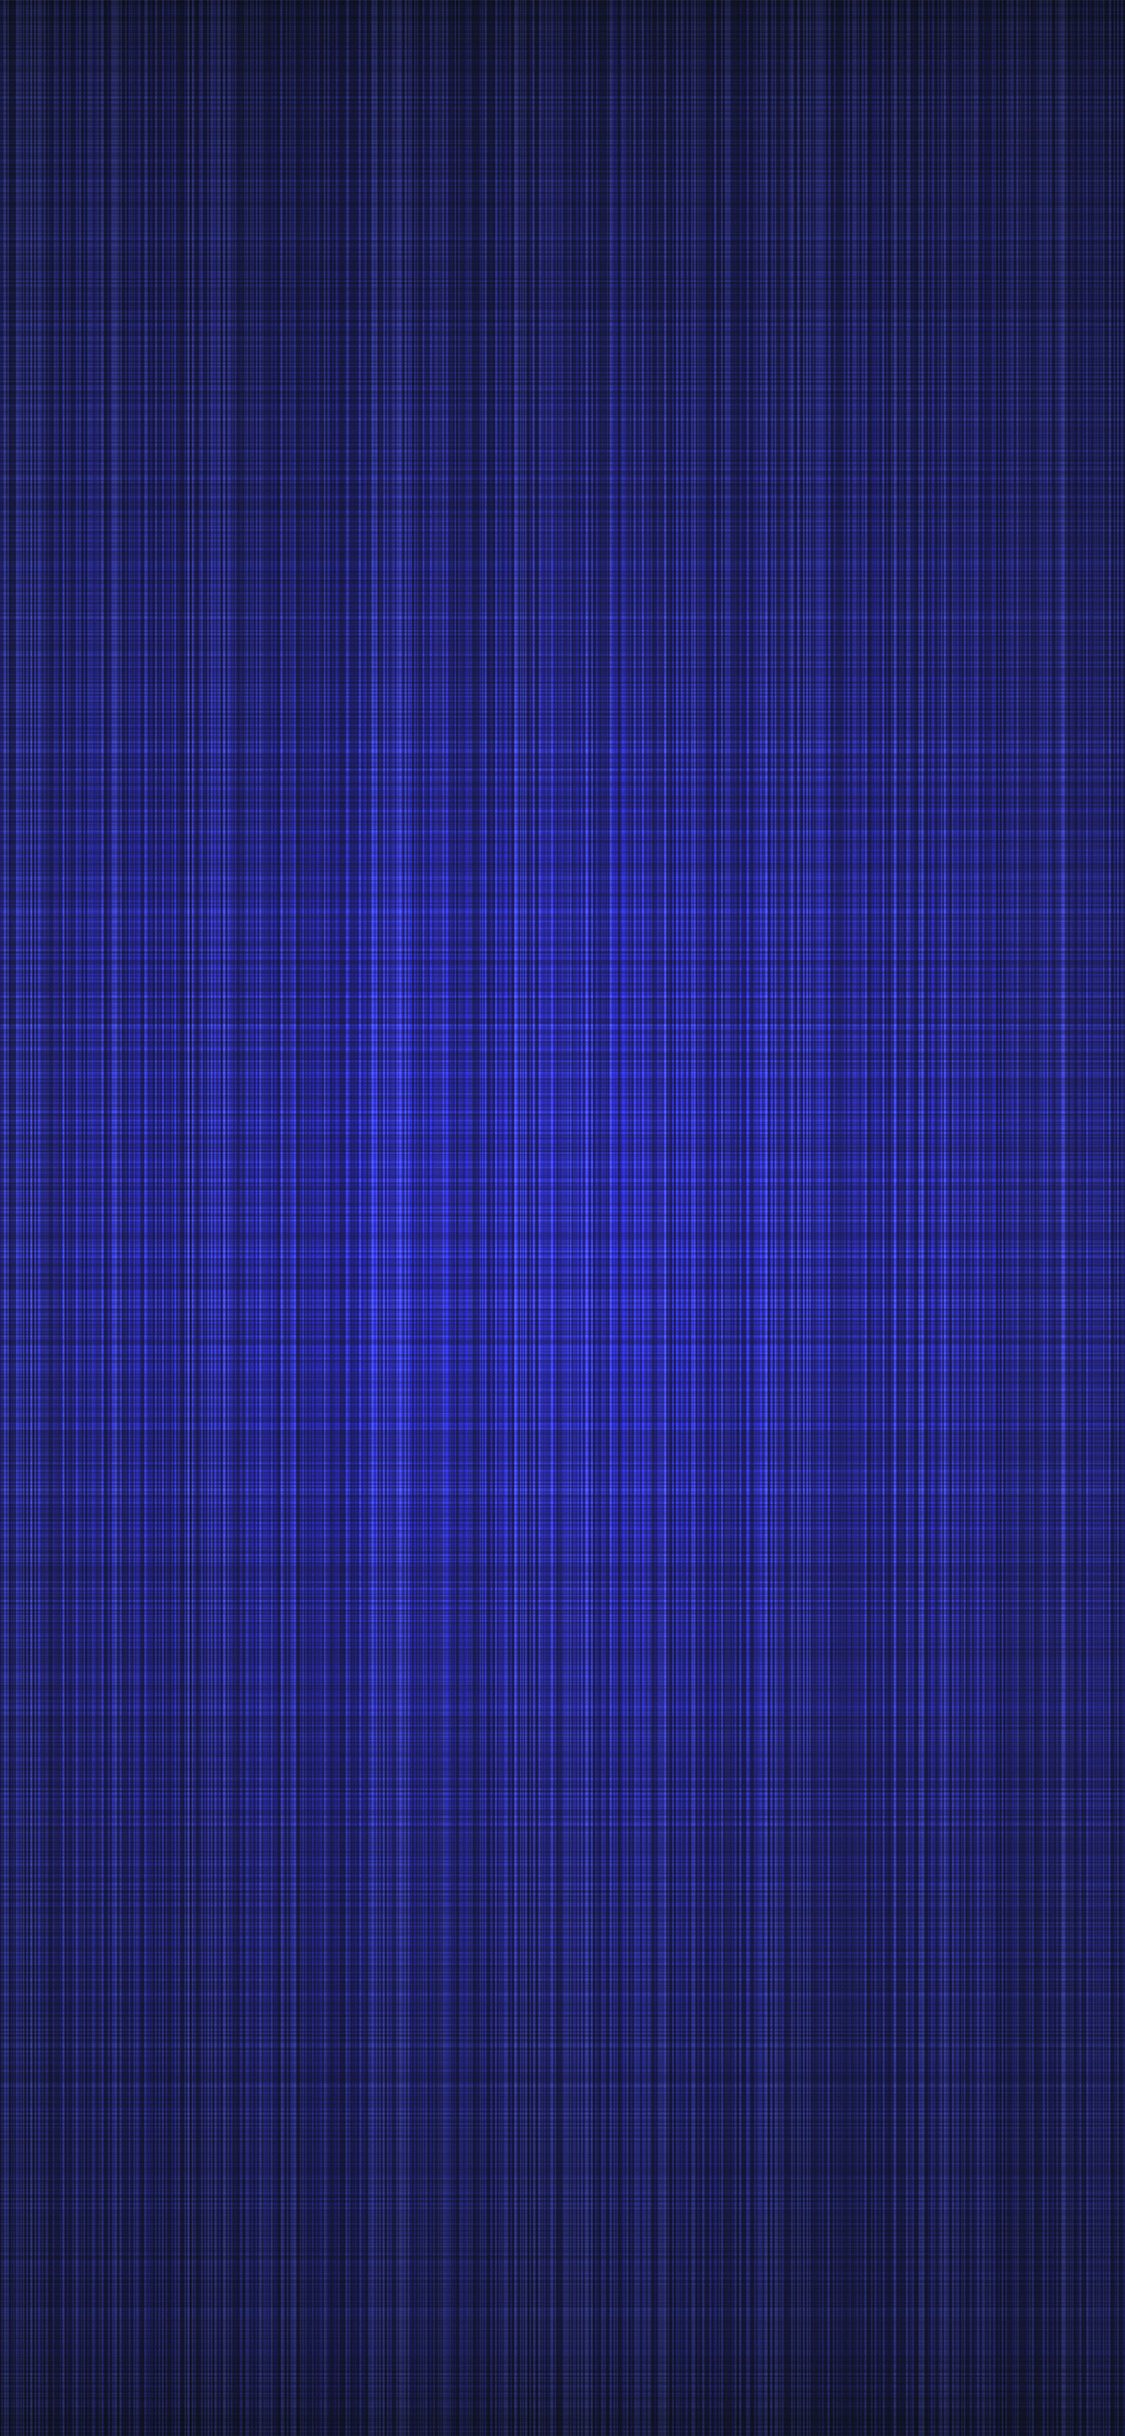 iPhoneXpapers.com-Apple-iPhone-wallpaper-vr80-linen-blue-dark-abstract-pattern